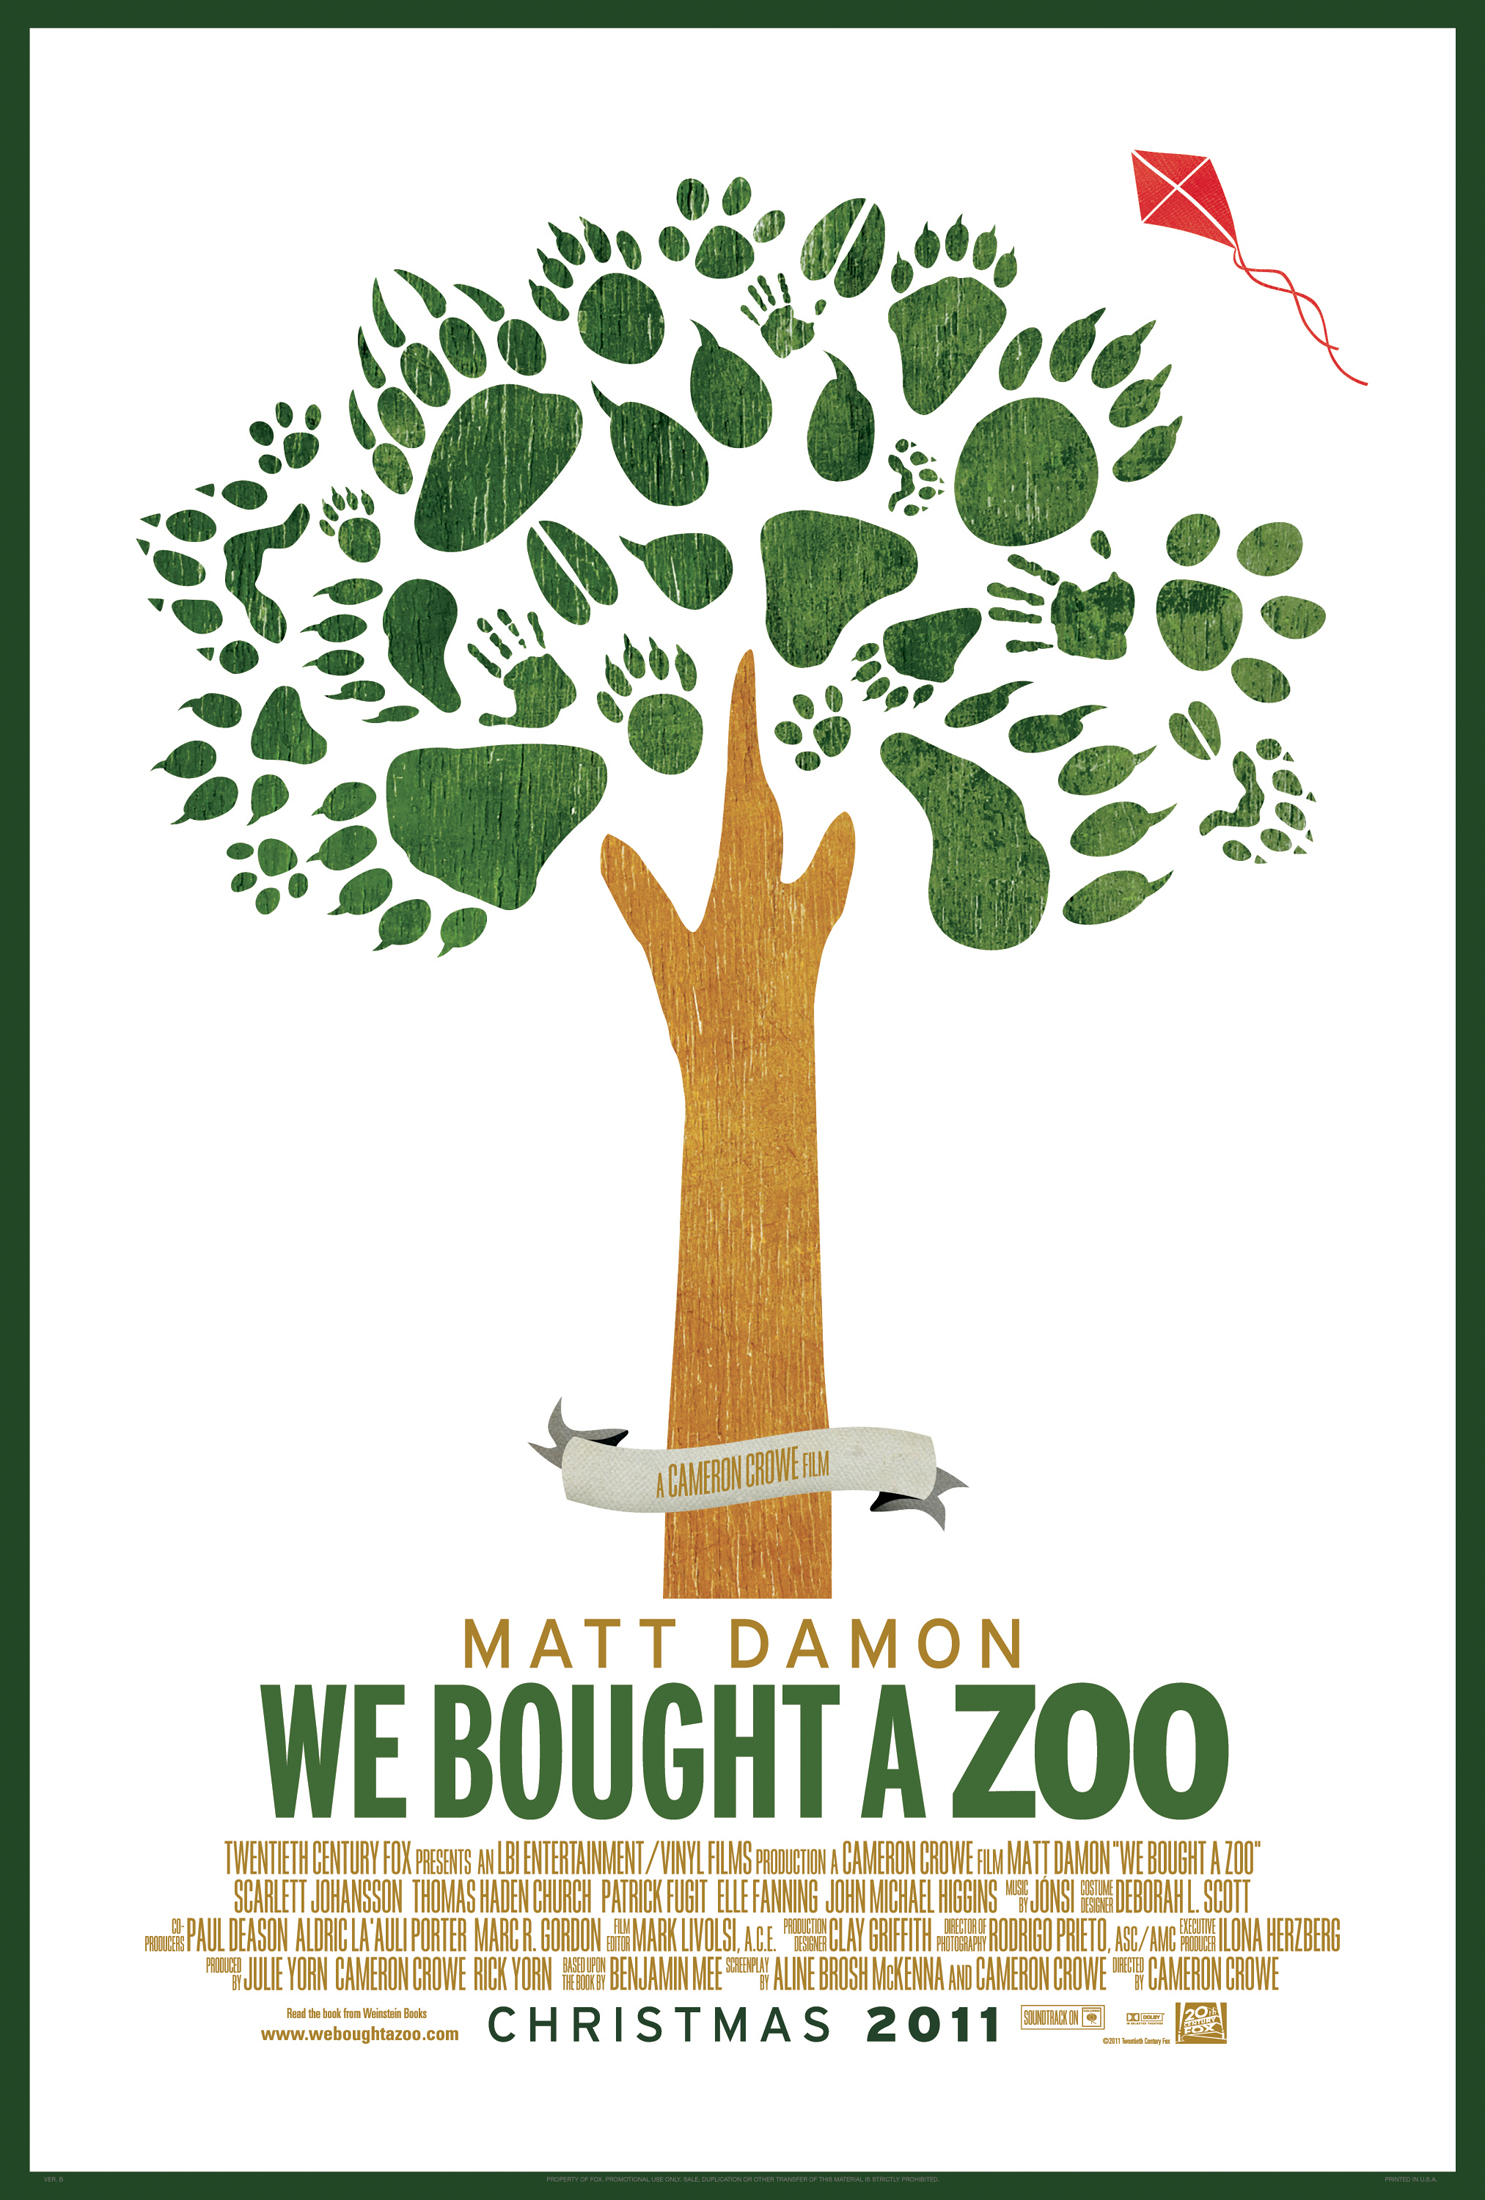 http://collider.com/wp-content/uploads/we-bought-a-zoo-poster.jpg